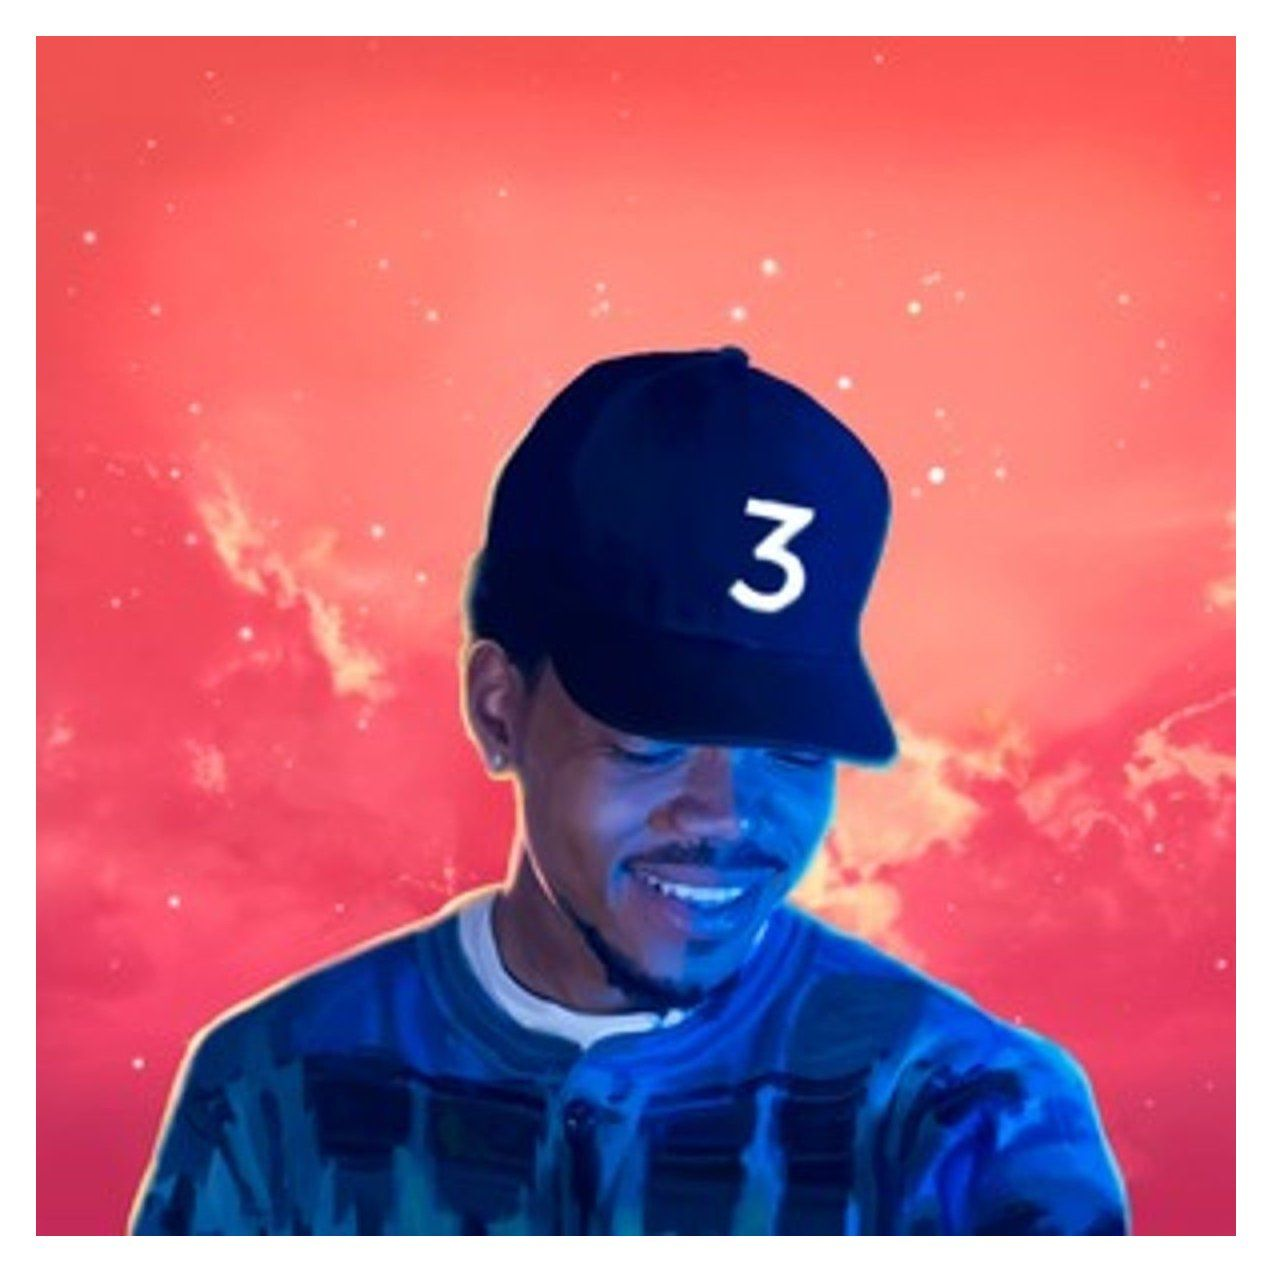 Poster Chance The Rapper Coloring Book On Mercari Coloring Book Album Cover Coloringbookalbumcover Coloring Book Album Rap Album Covers Music Album Cover